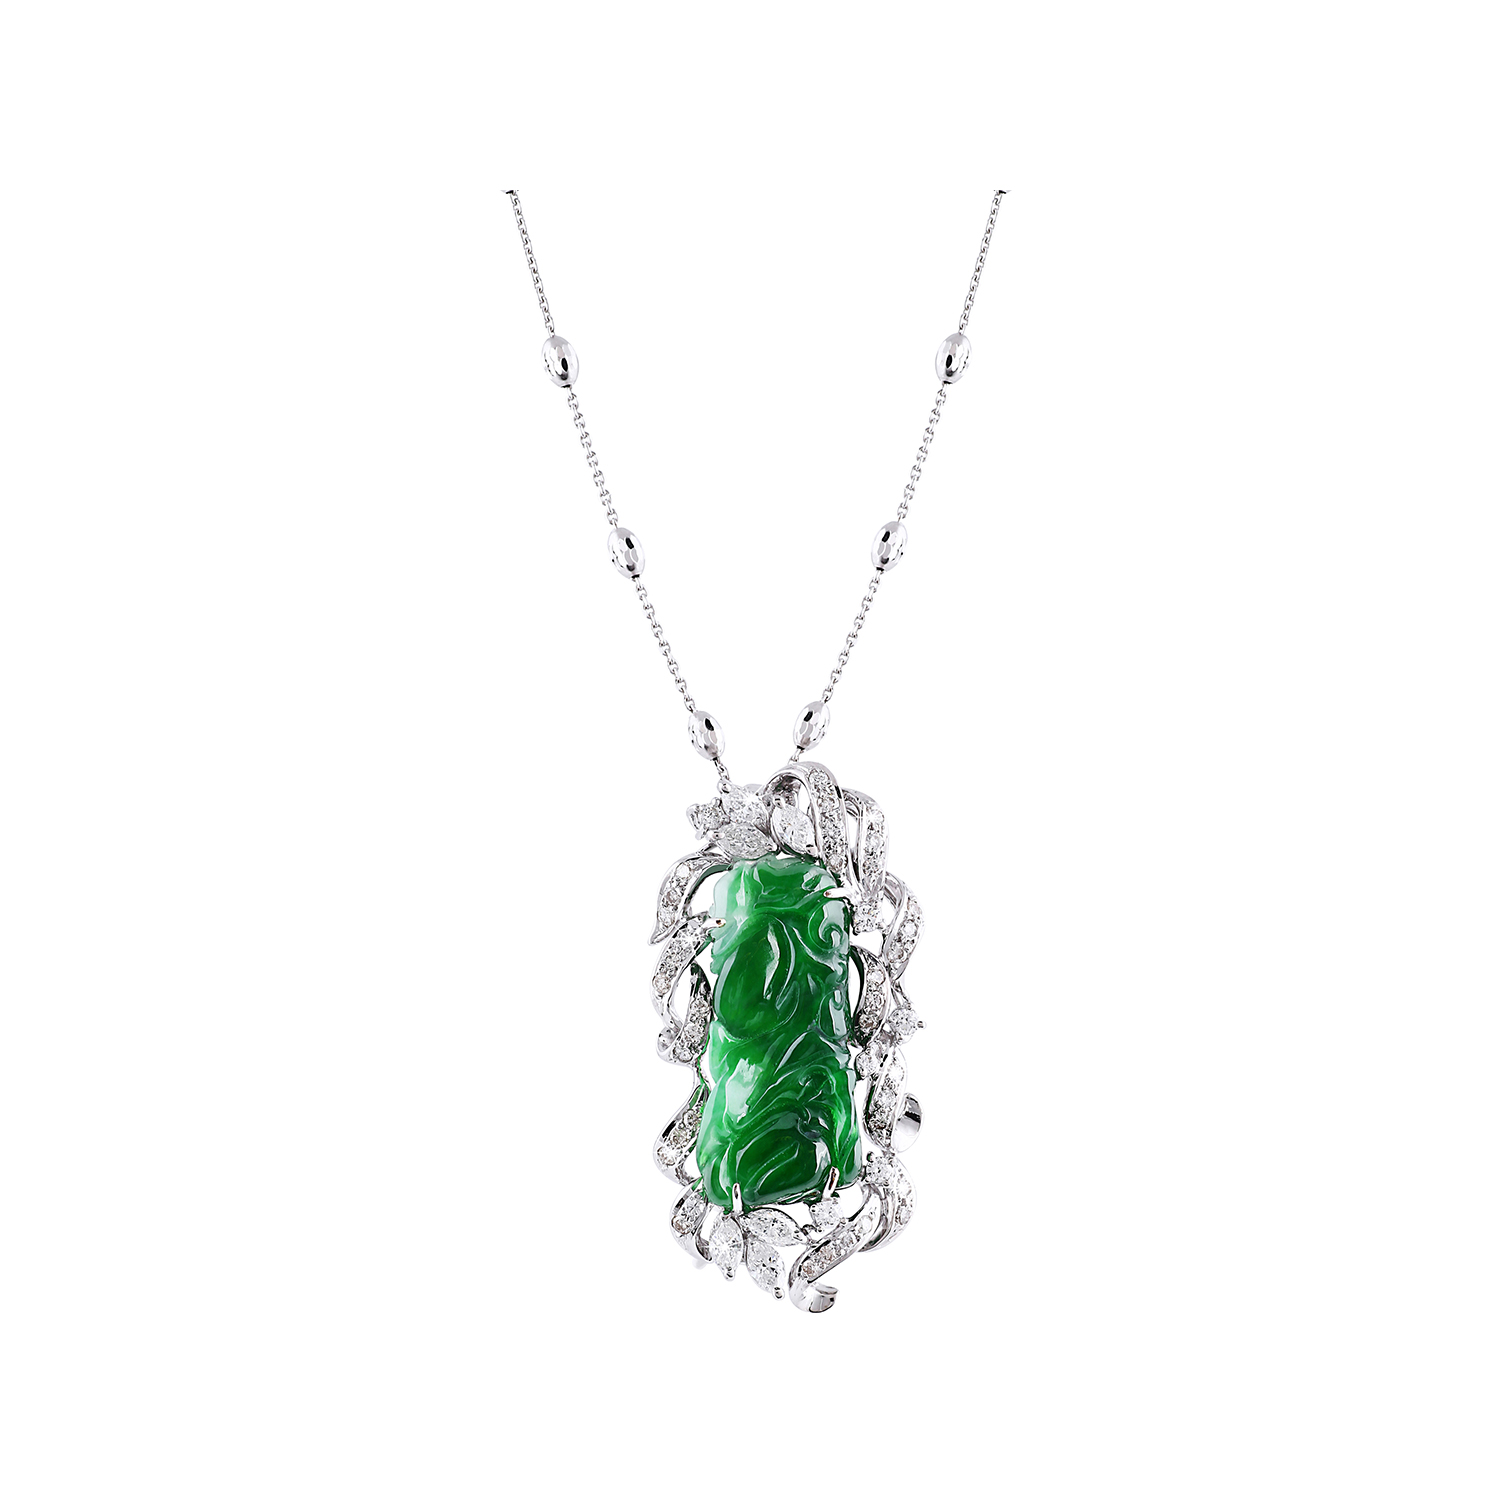 Bespoke Jewellery Singapore Exotic Gems & Jewellery Pte Ltd Jade Diamond Pendant